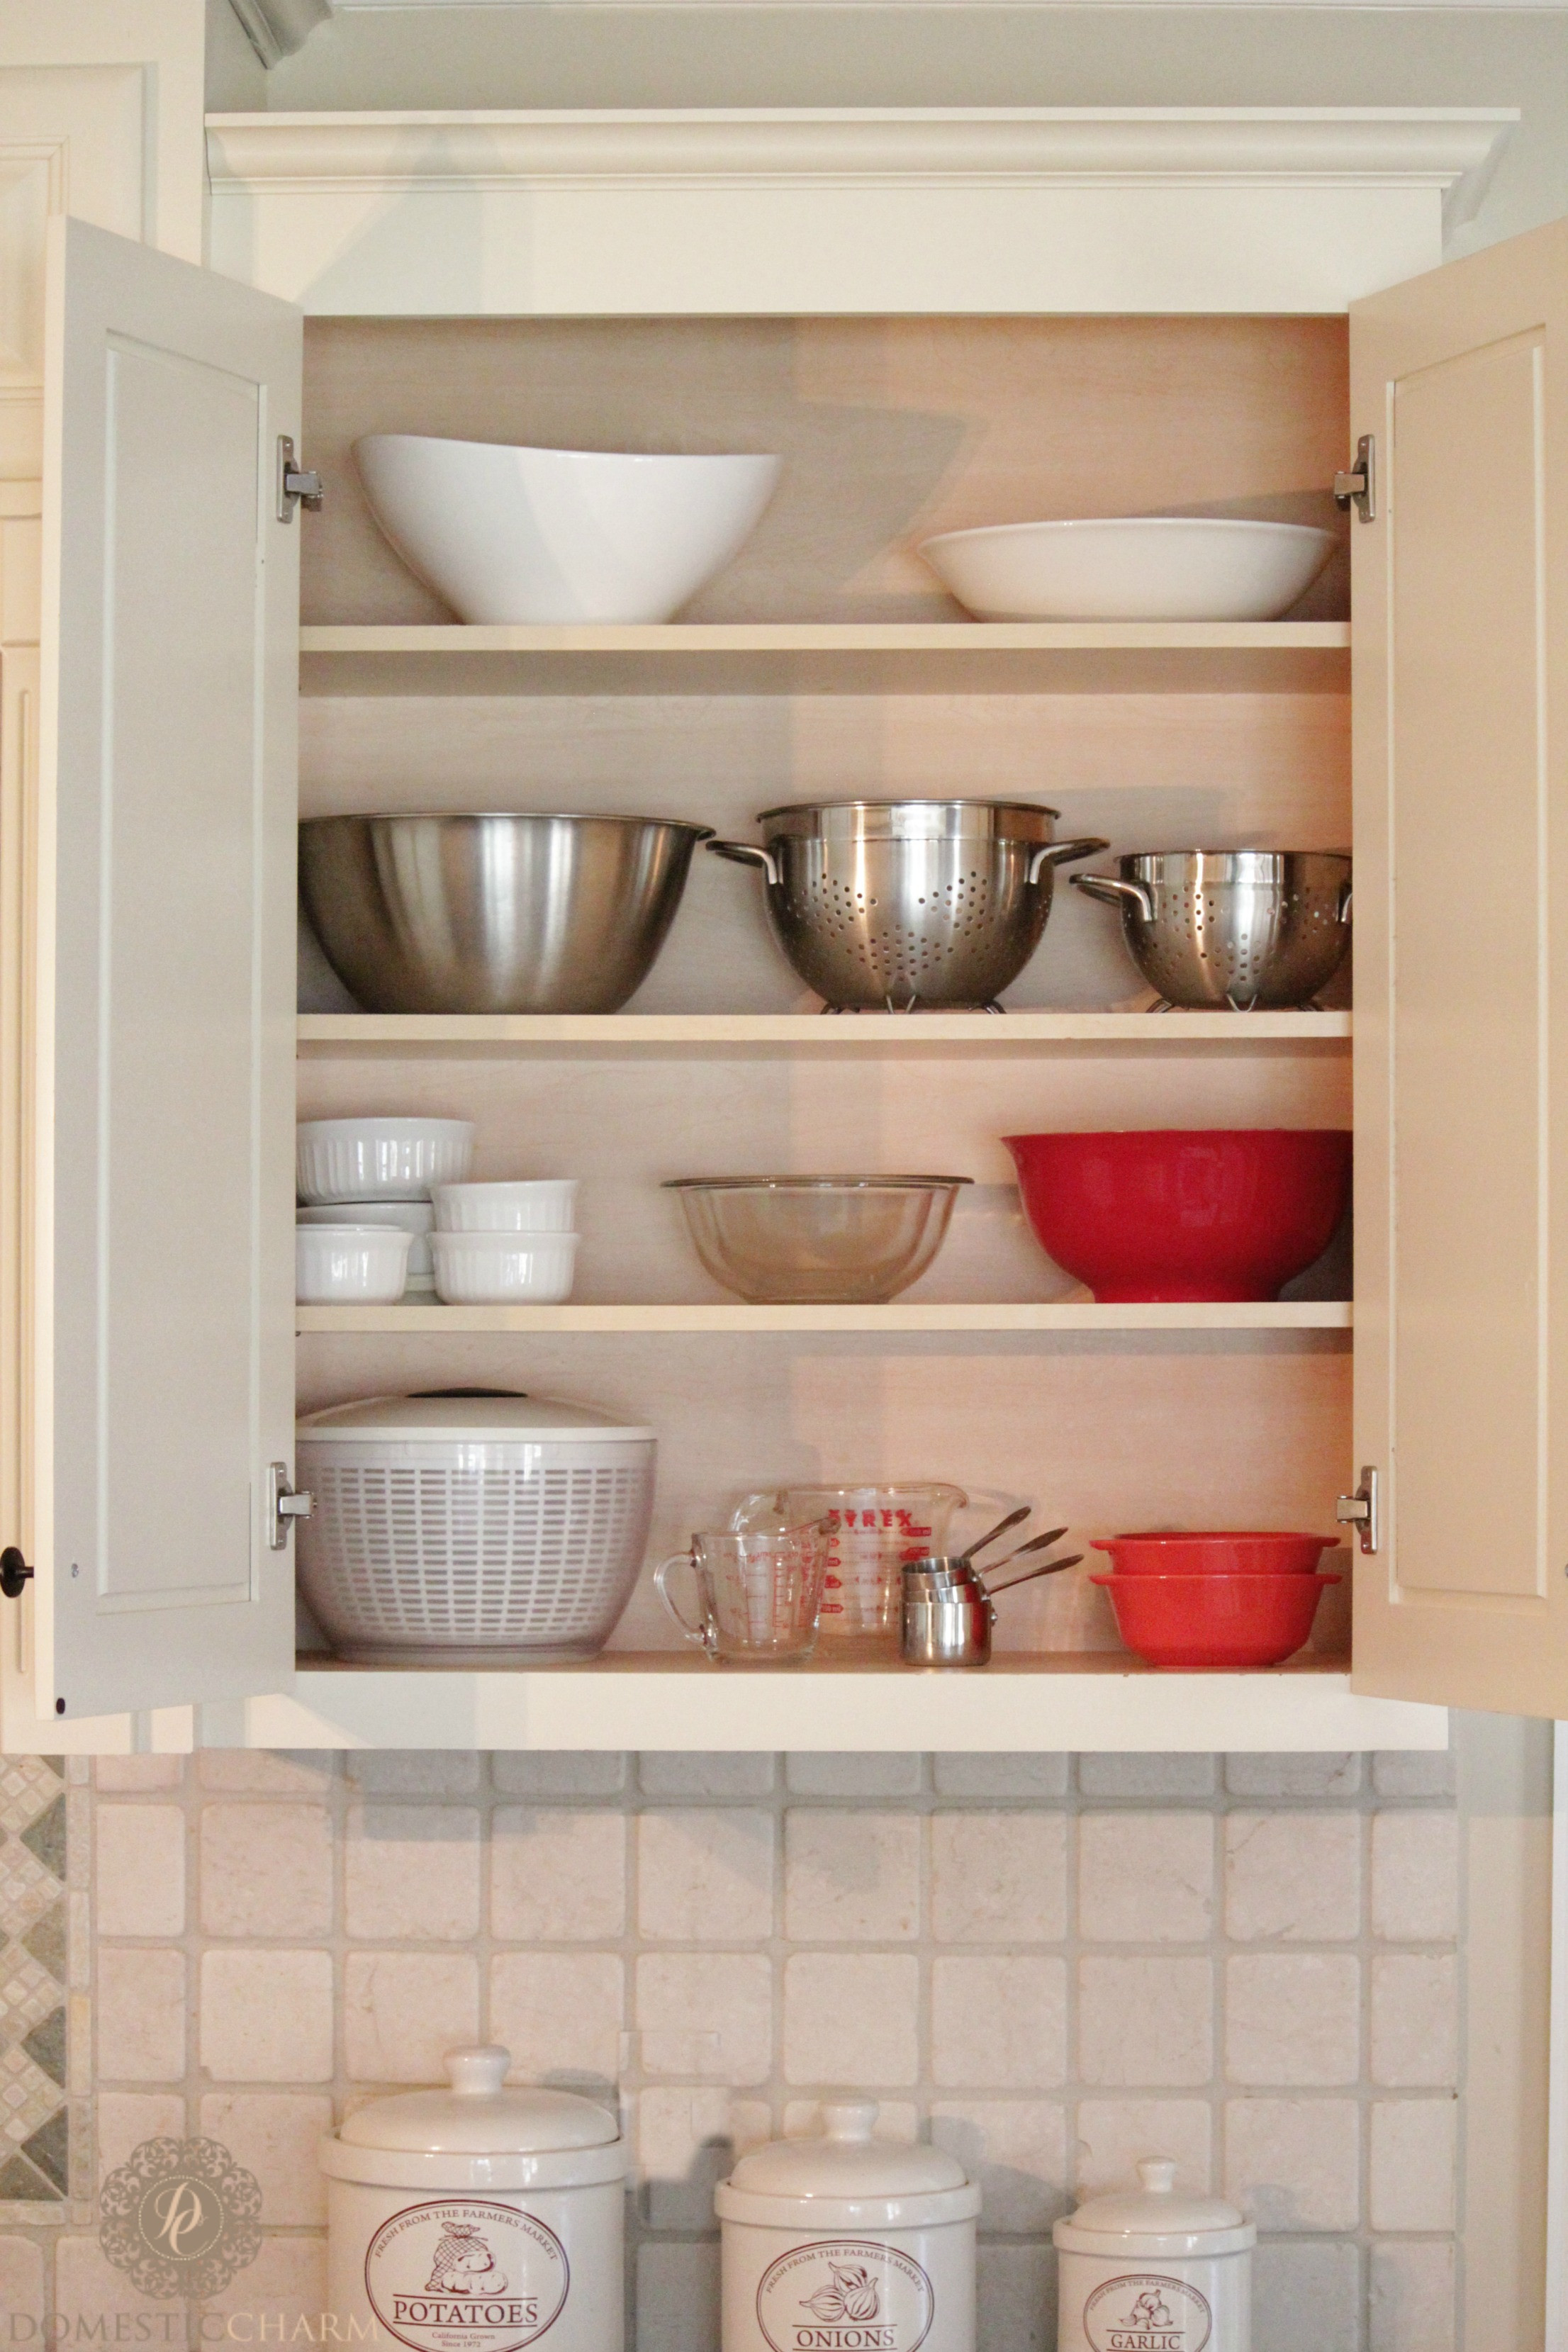 Best ideas about Kitchen Organizer Shelf . Save or Pin Organizing Your Kitchen Cabinets Domestic Charm Now.